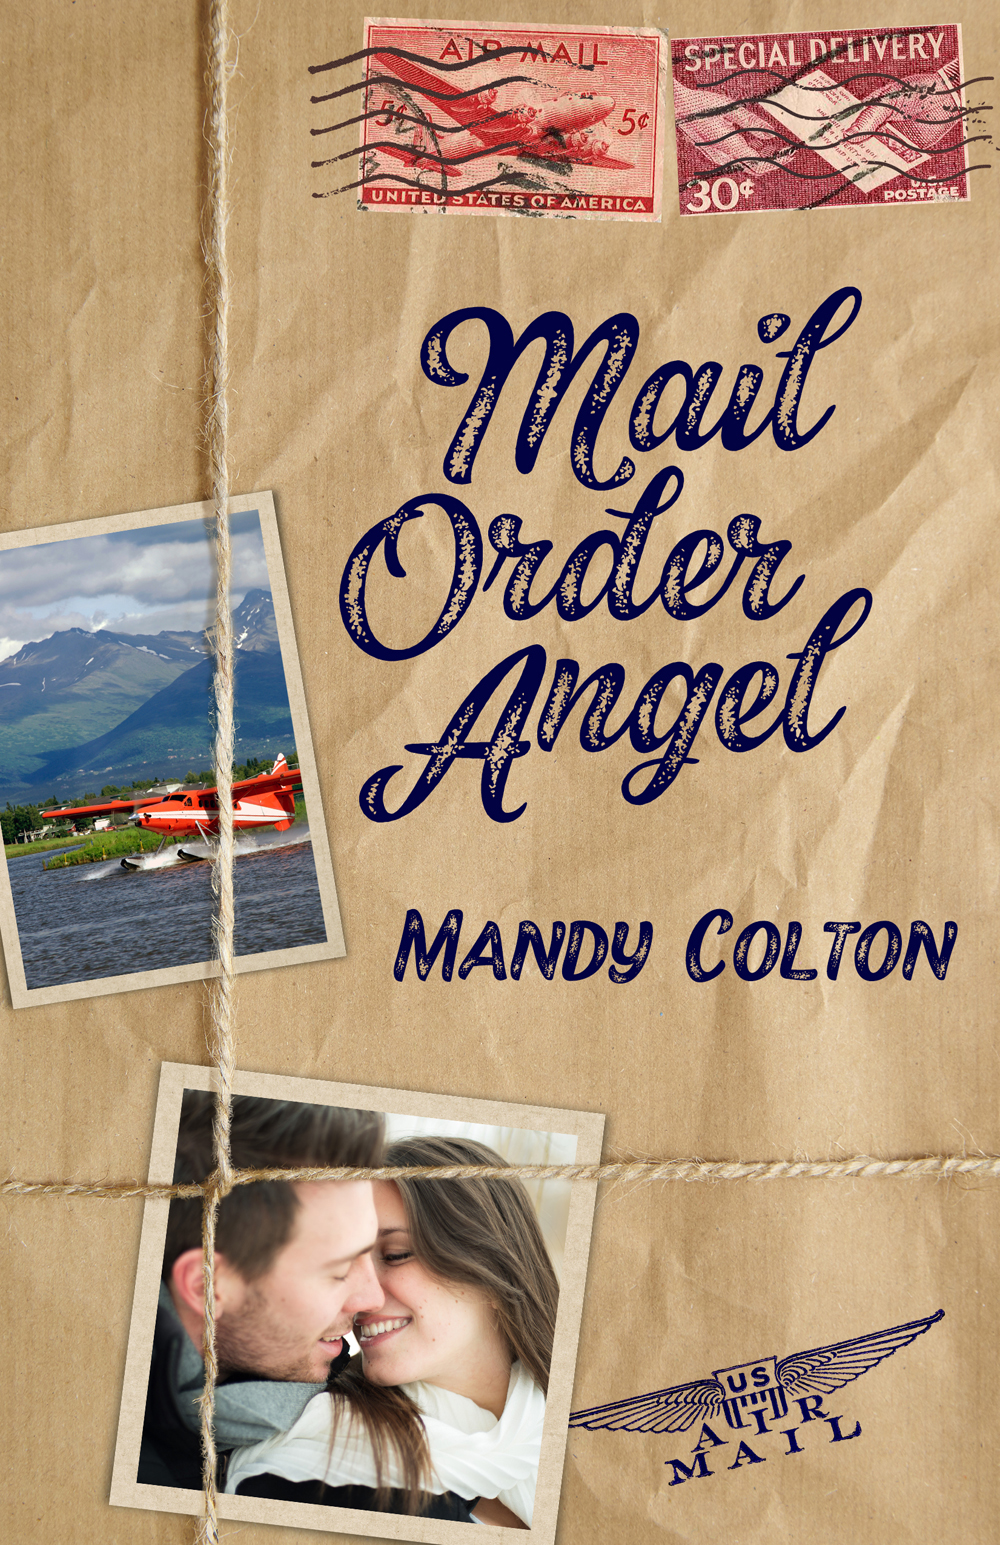 Mail Order Angel by Mandy Colton